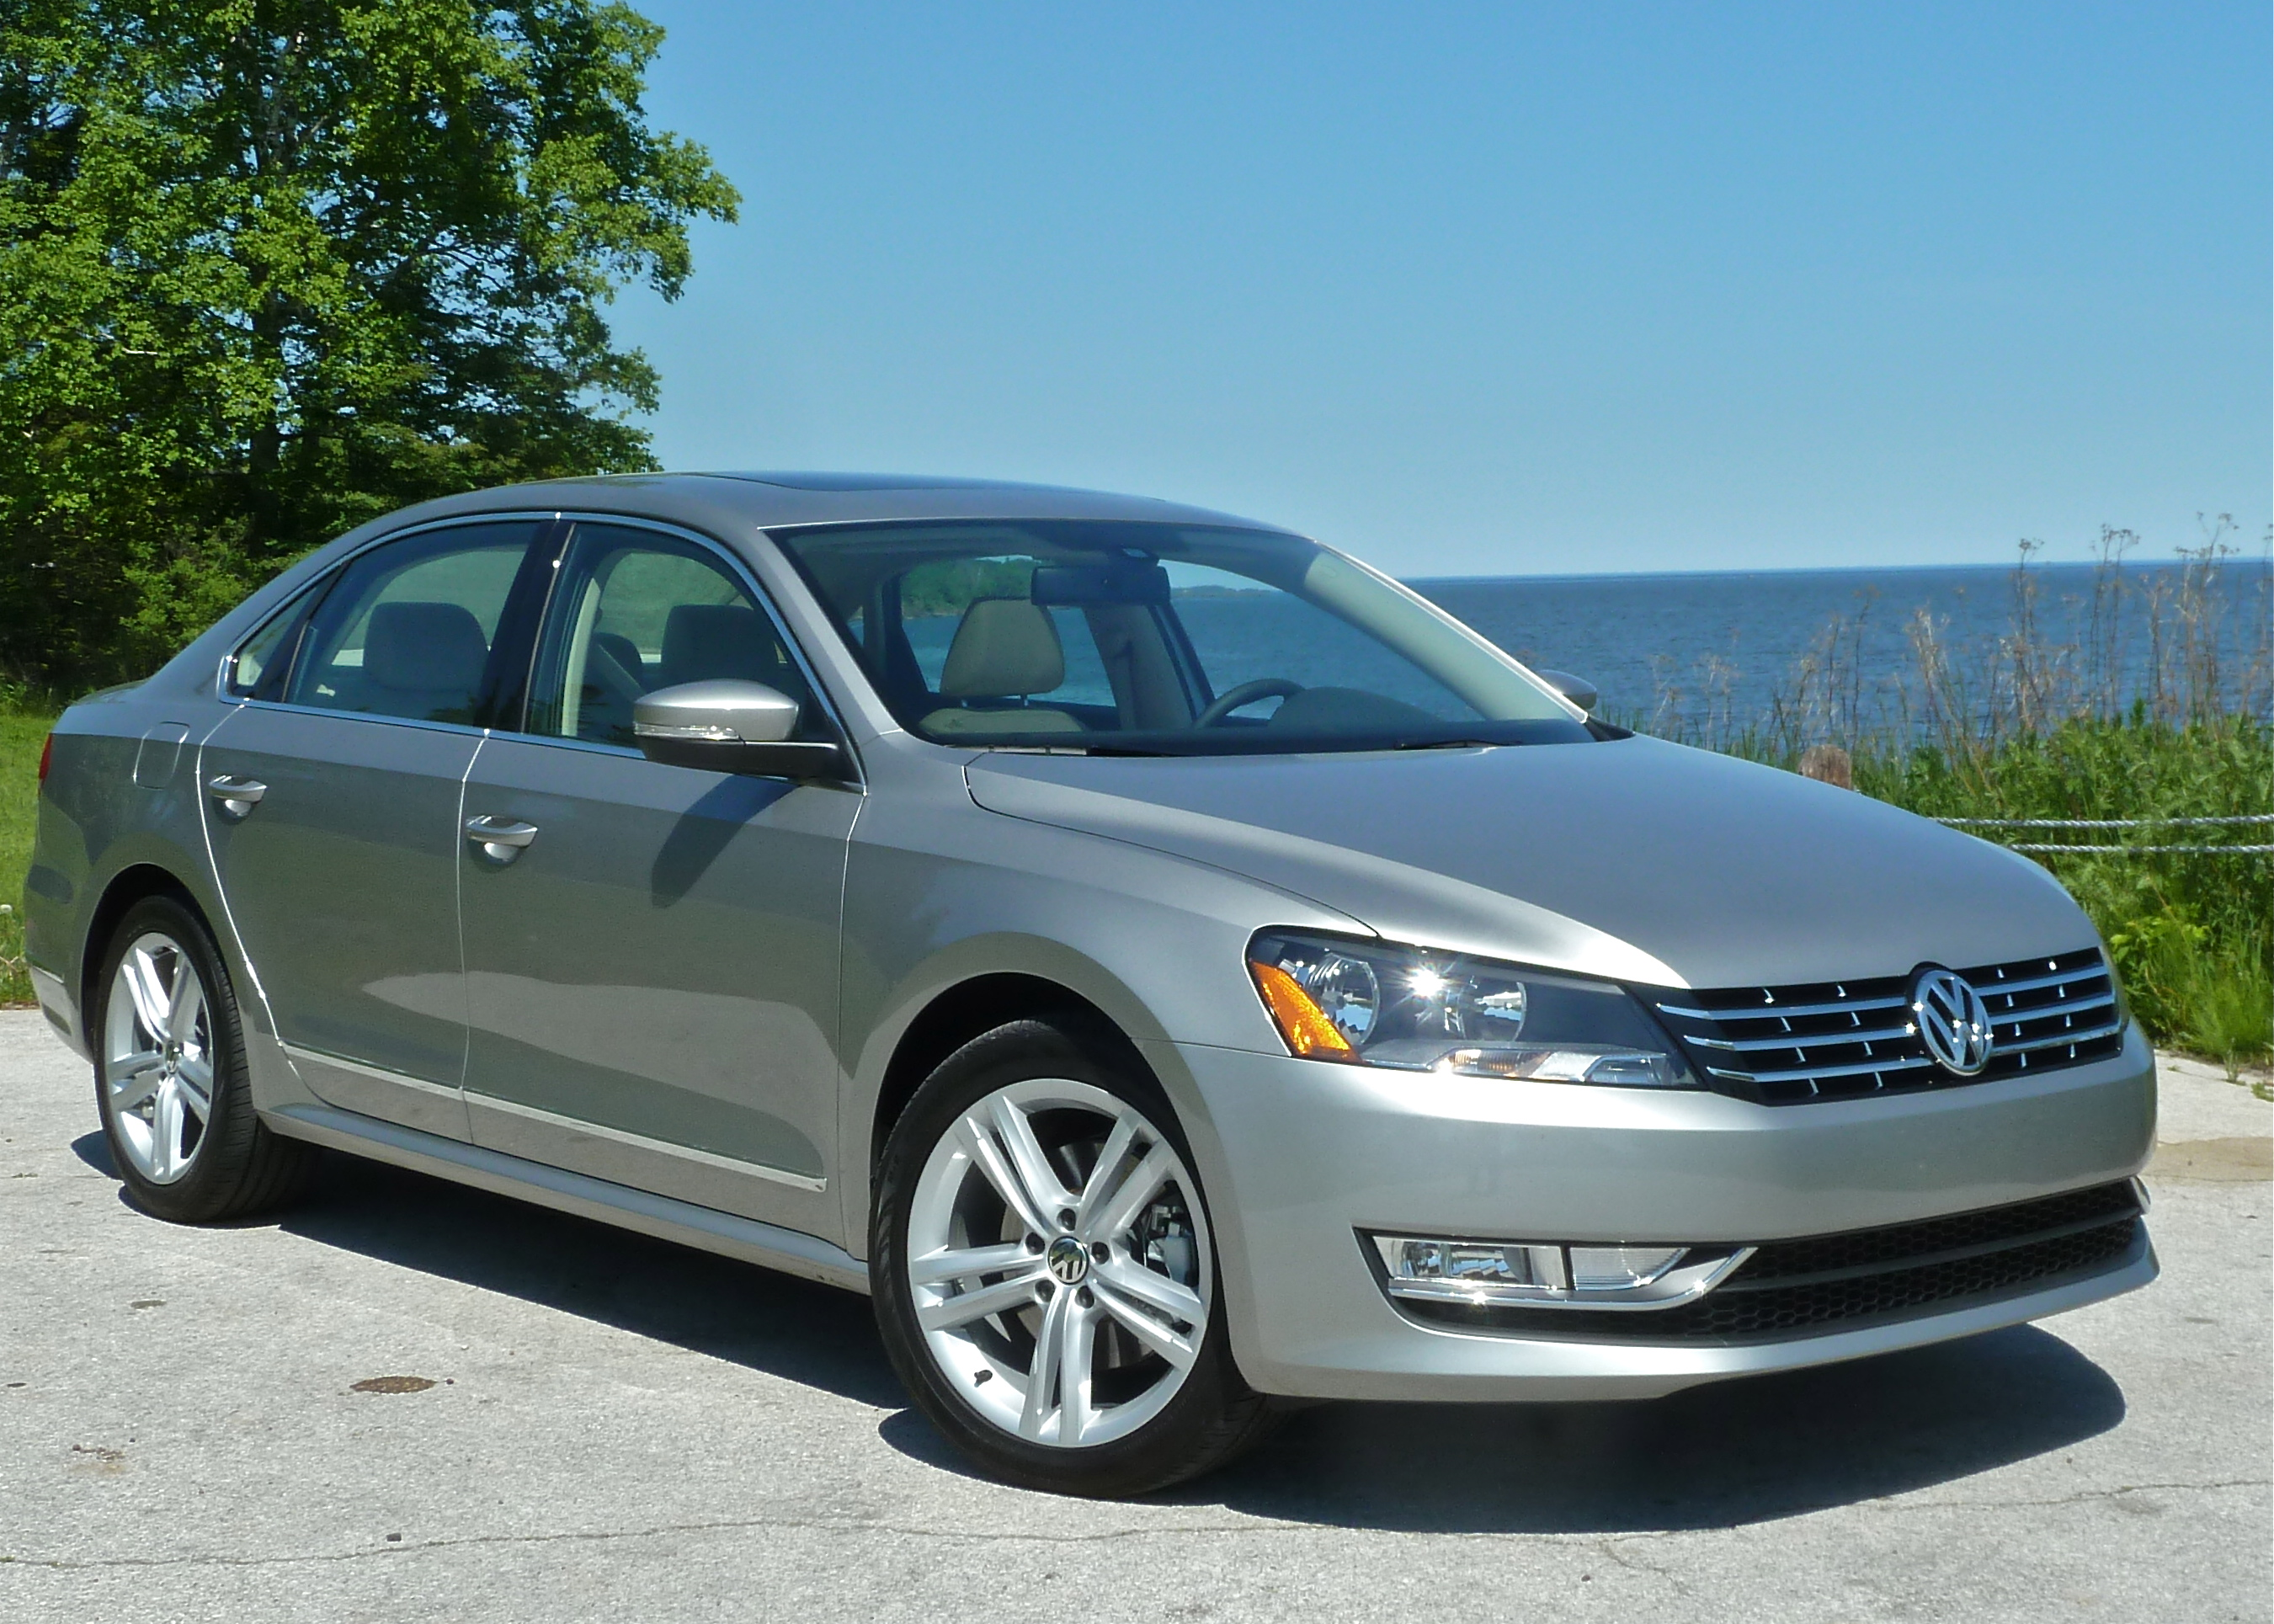 Volkswagen Tdi Mpg Passat Tdi Top Rated For Mpg Power New Car Picks